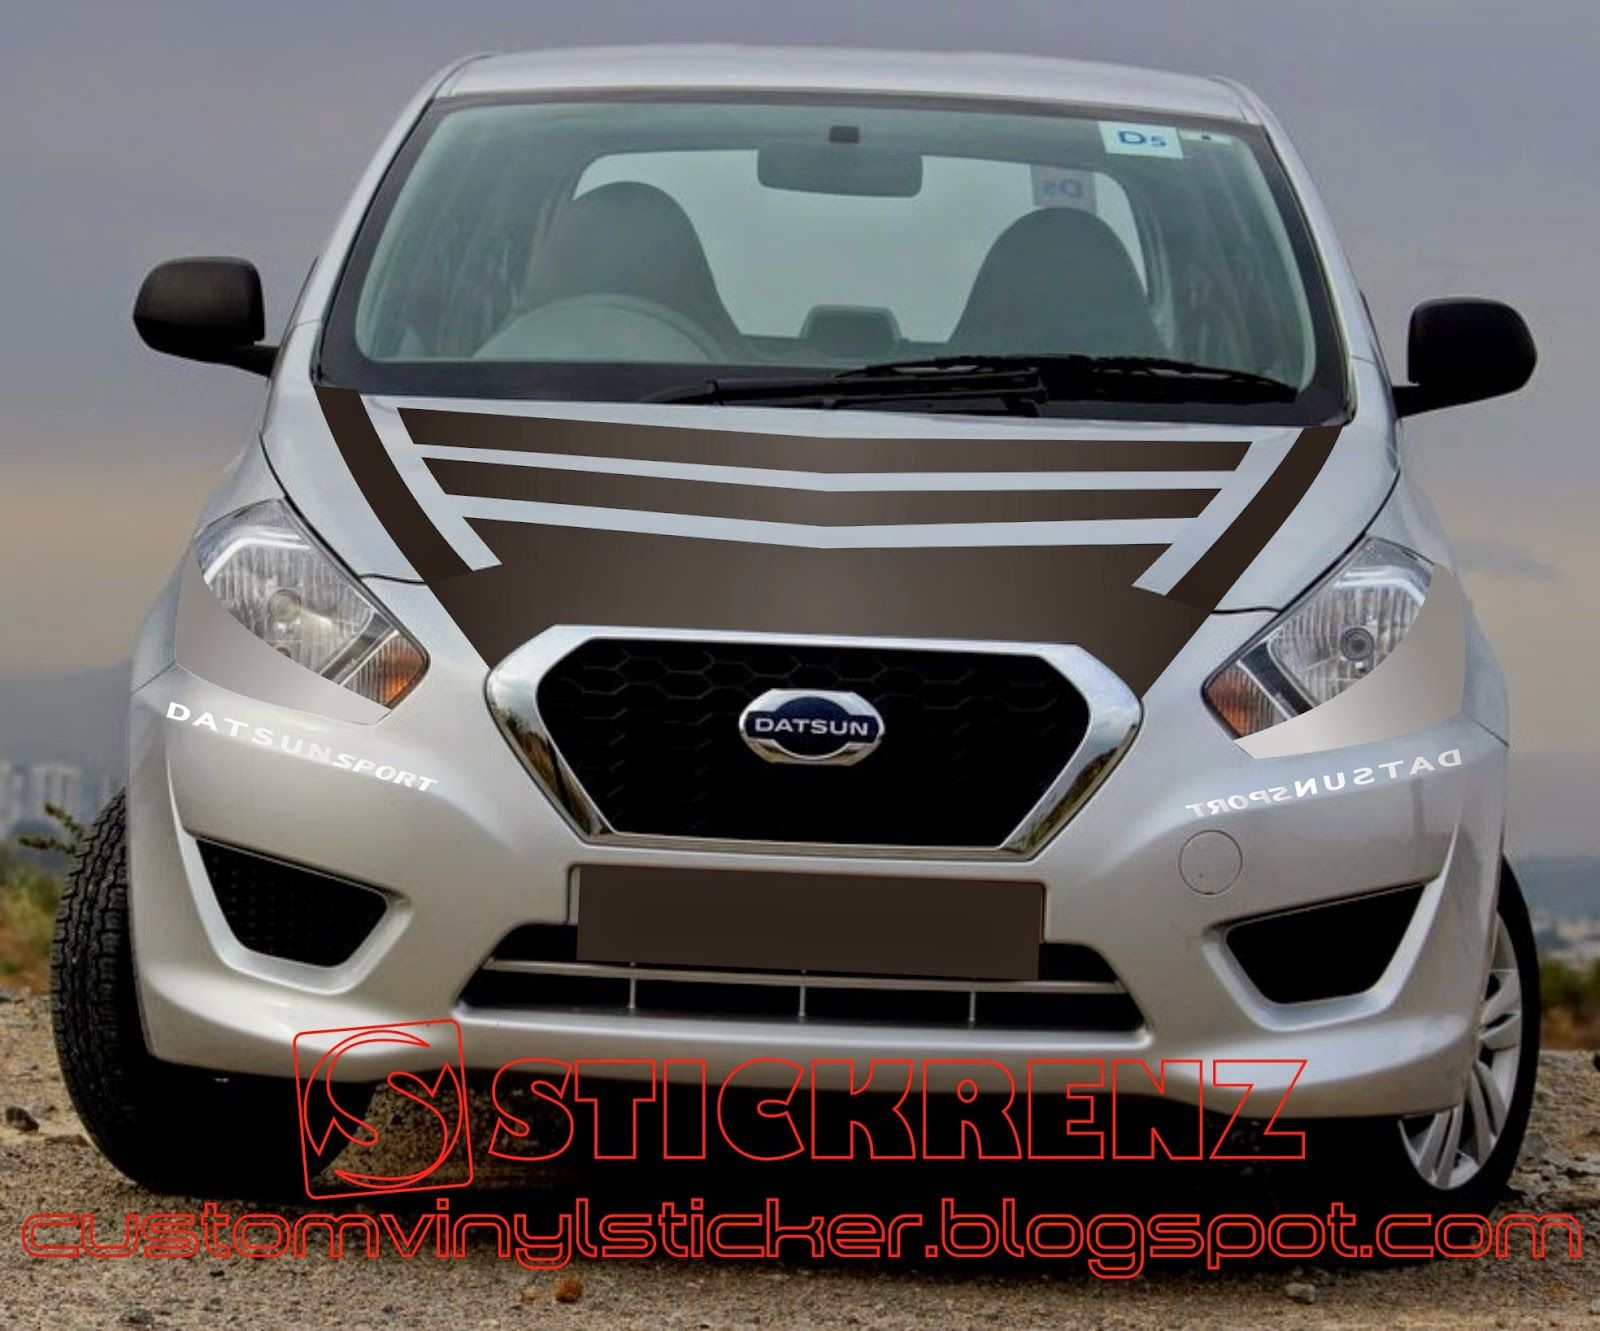 Car cutting sticker design - Datsun Go Hatchback Hood Strip Half Blind Head Lamp Sticker Concept